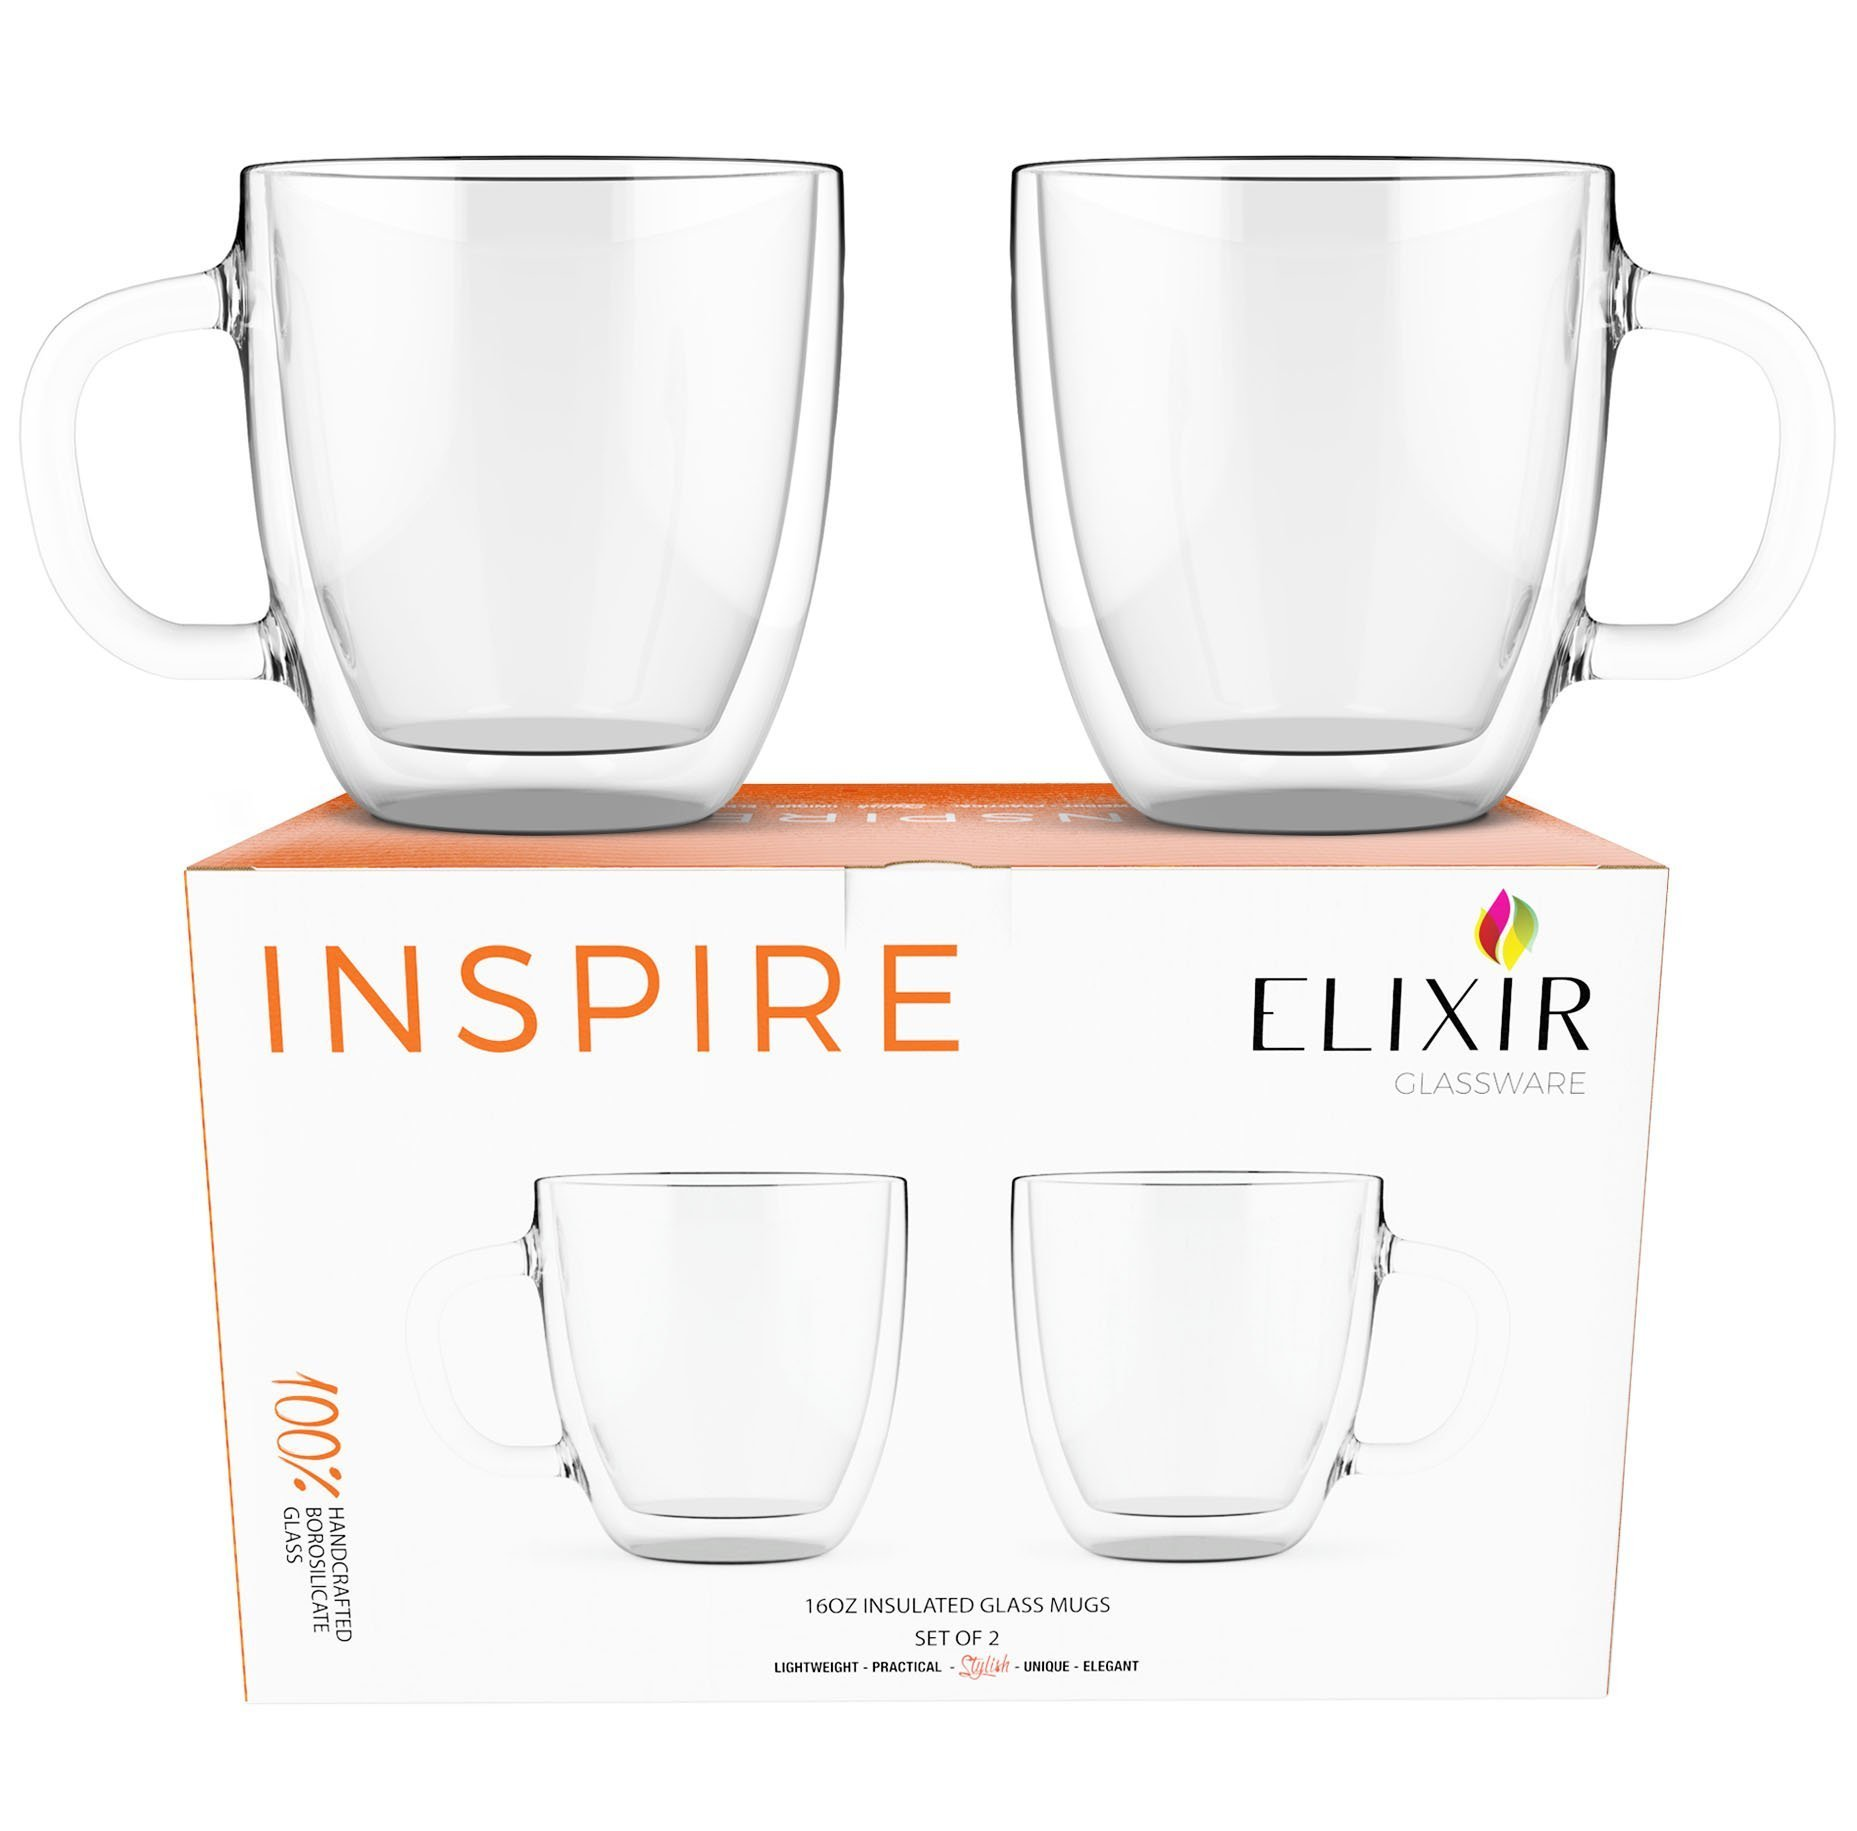 Large Coffee Mugs, Double Wall Glass Set of 2, 16 oz - Dishwasher & Microwave Safe - Clear, Unique & Insulated with Handle, By Elixir Glassware by Elixir Glassware (Image #2)